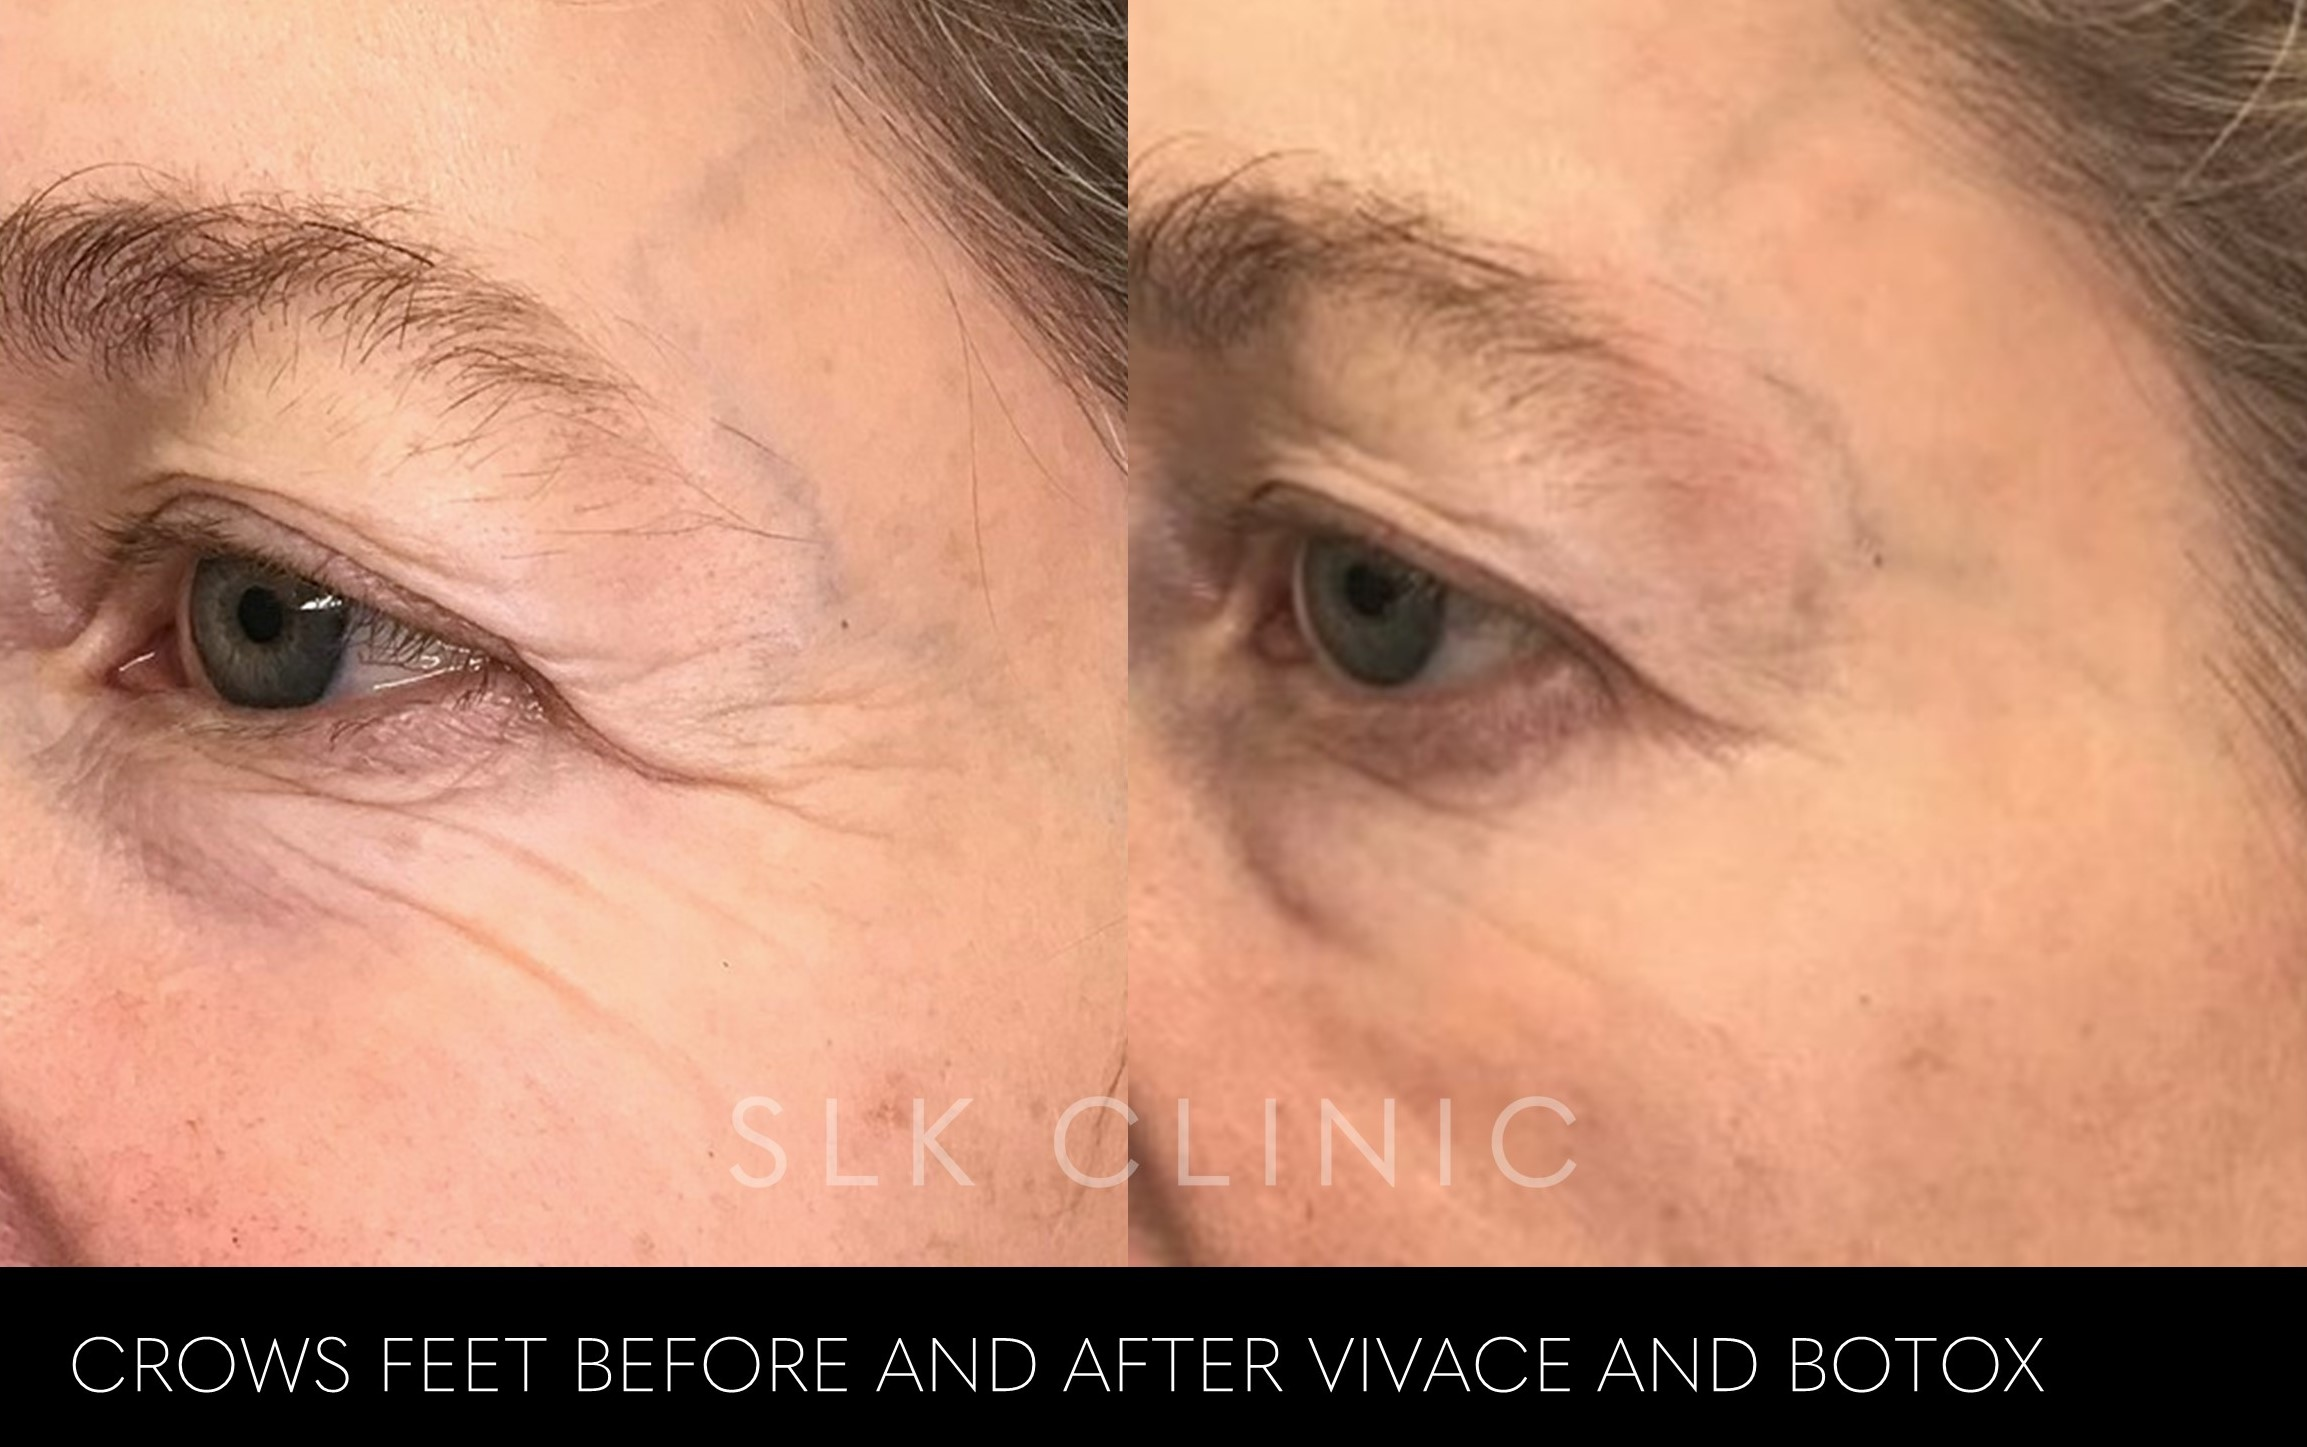 before and after 1 vivace crows feet loose skin woman nashville tennessee SLK